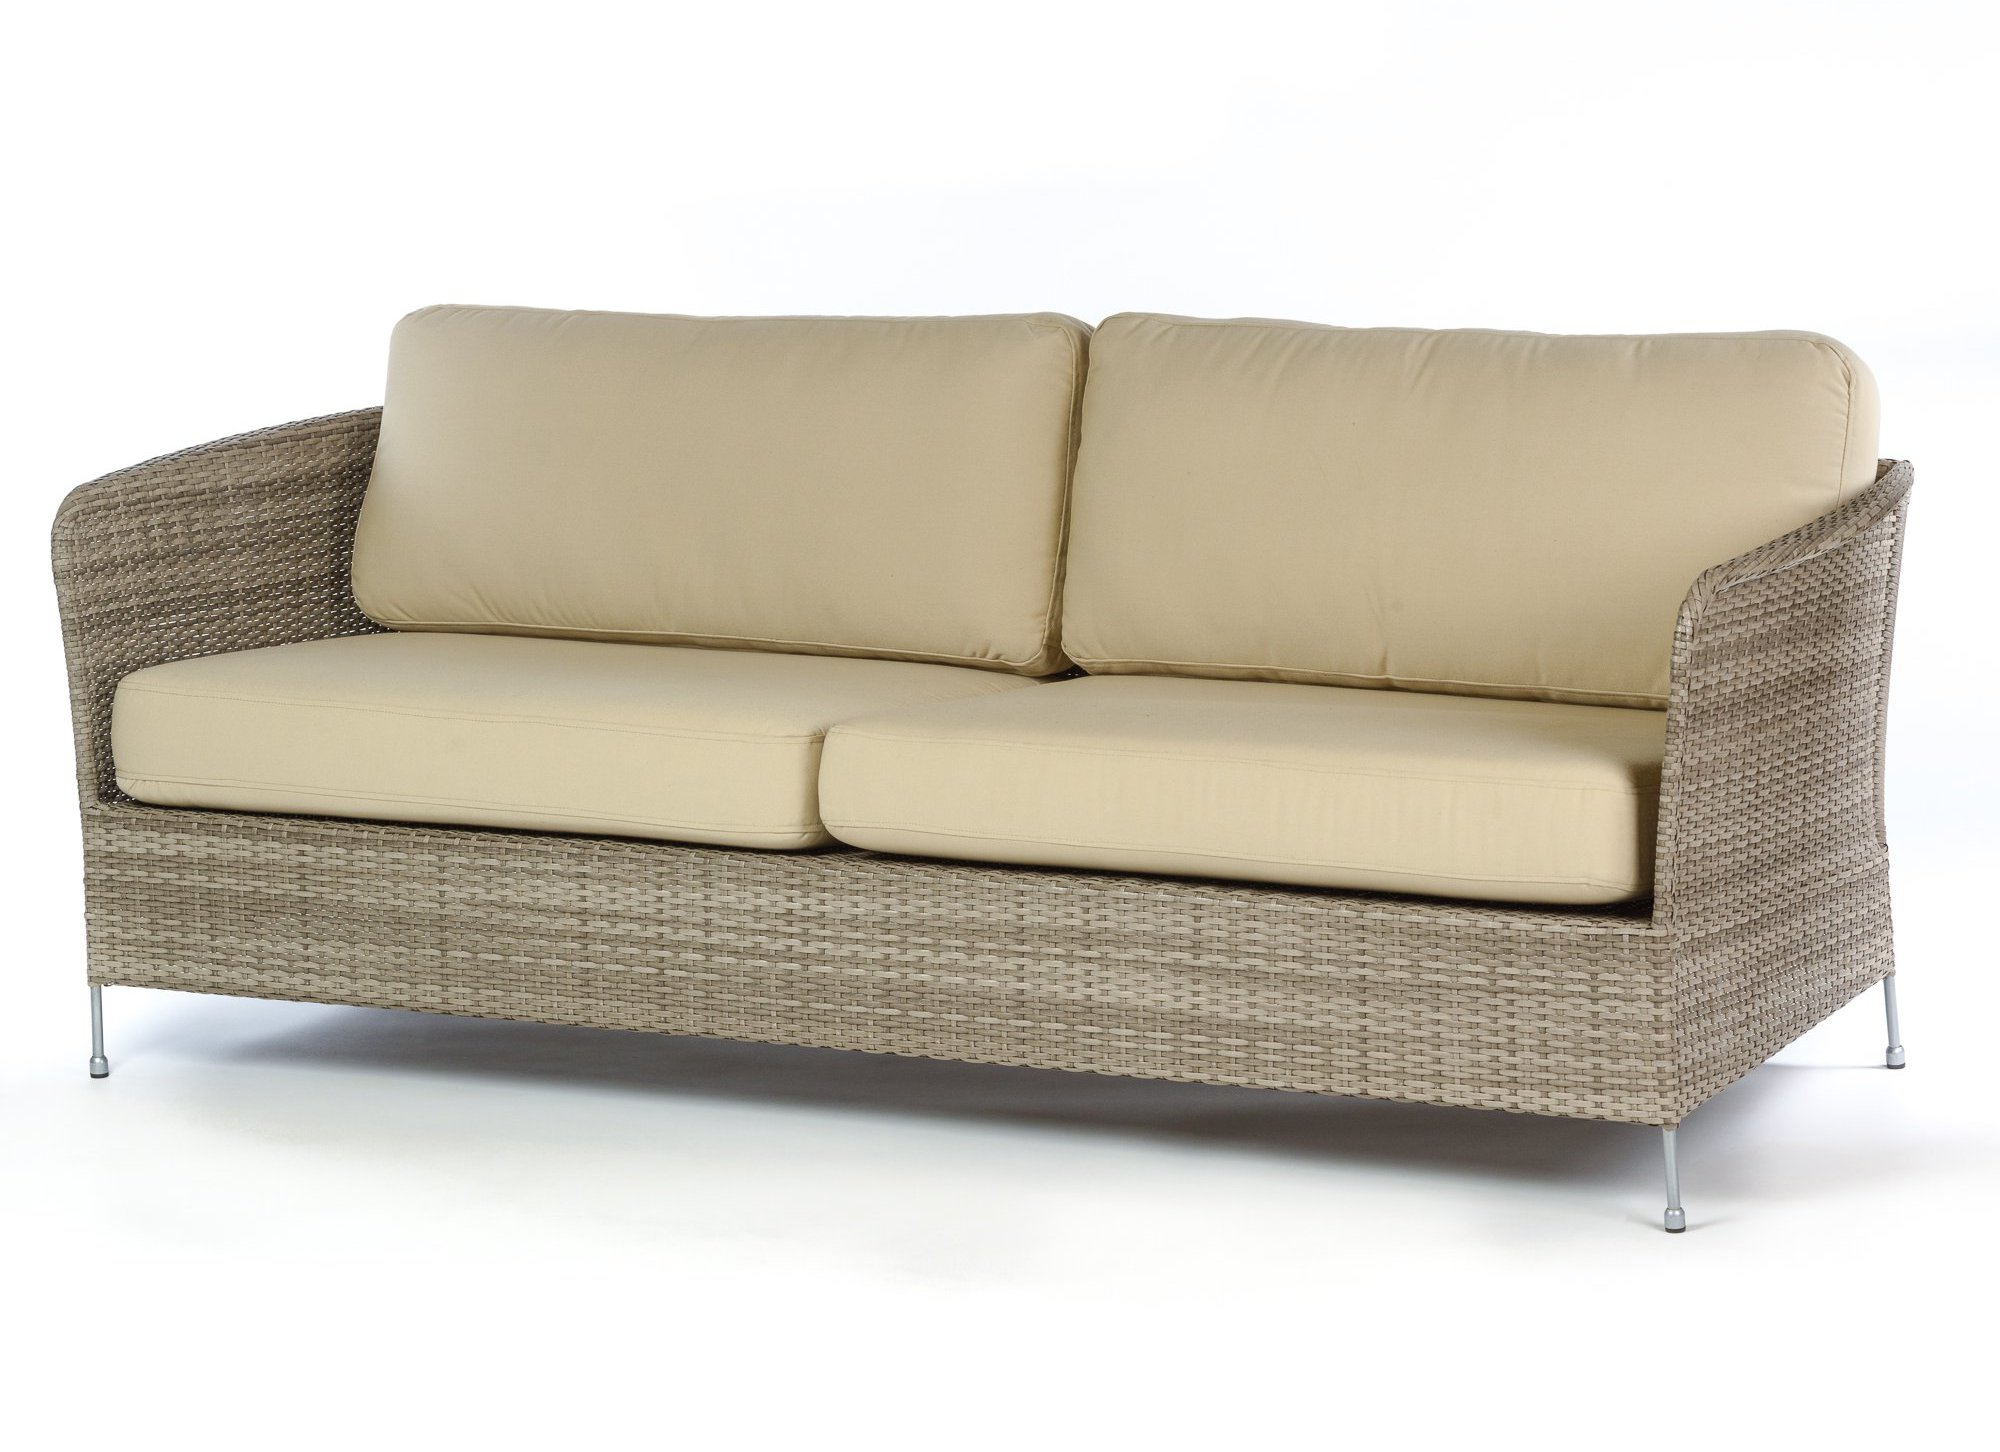 New cushions for outdoor furniture home design ideas and pictures New home furniture bekasi